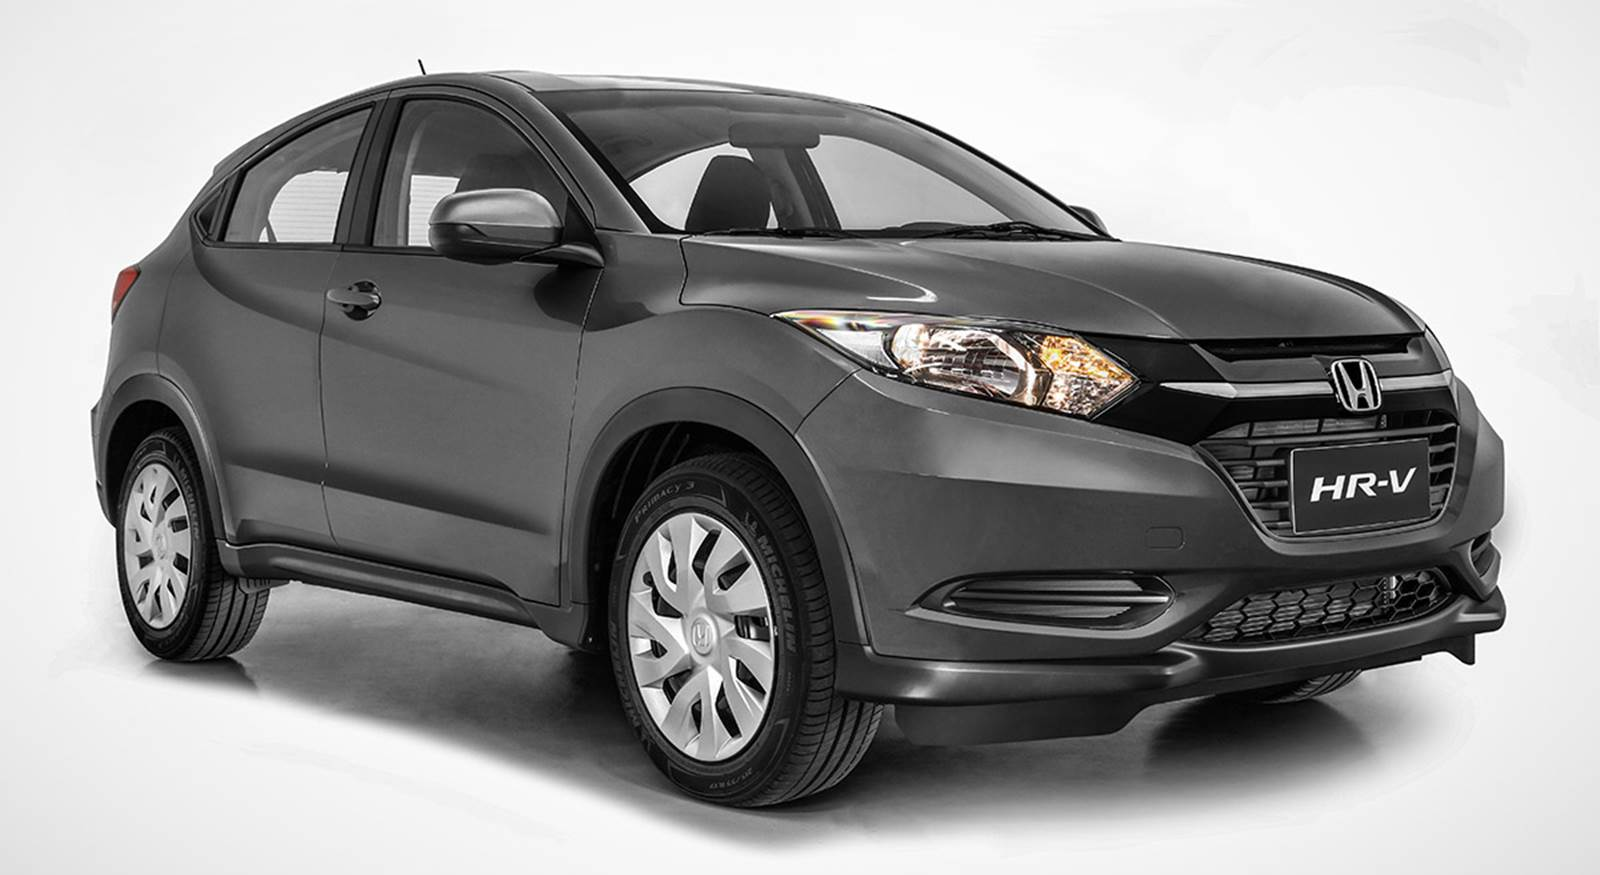 Honda HR-V DX 2015